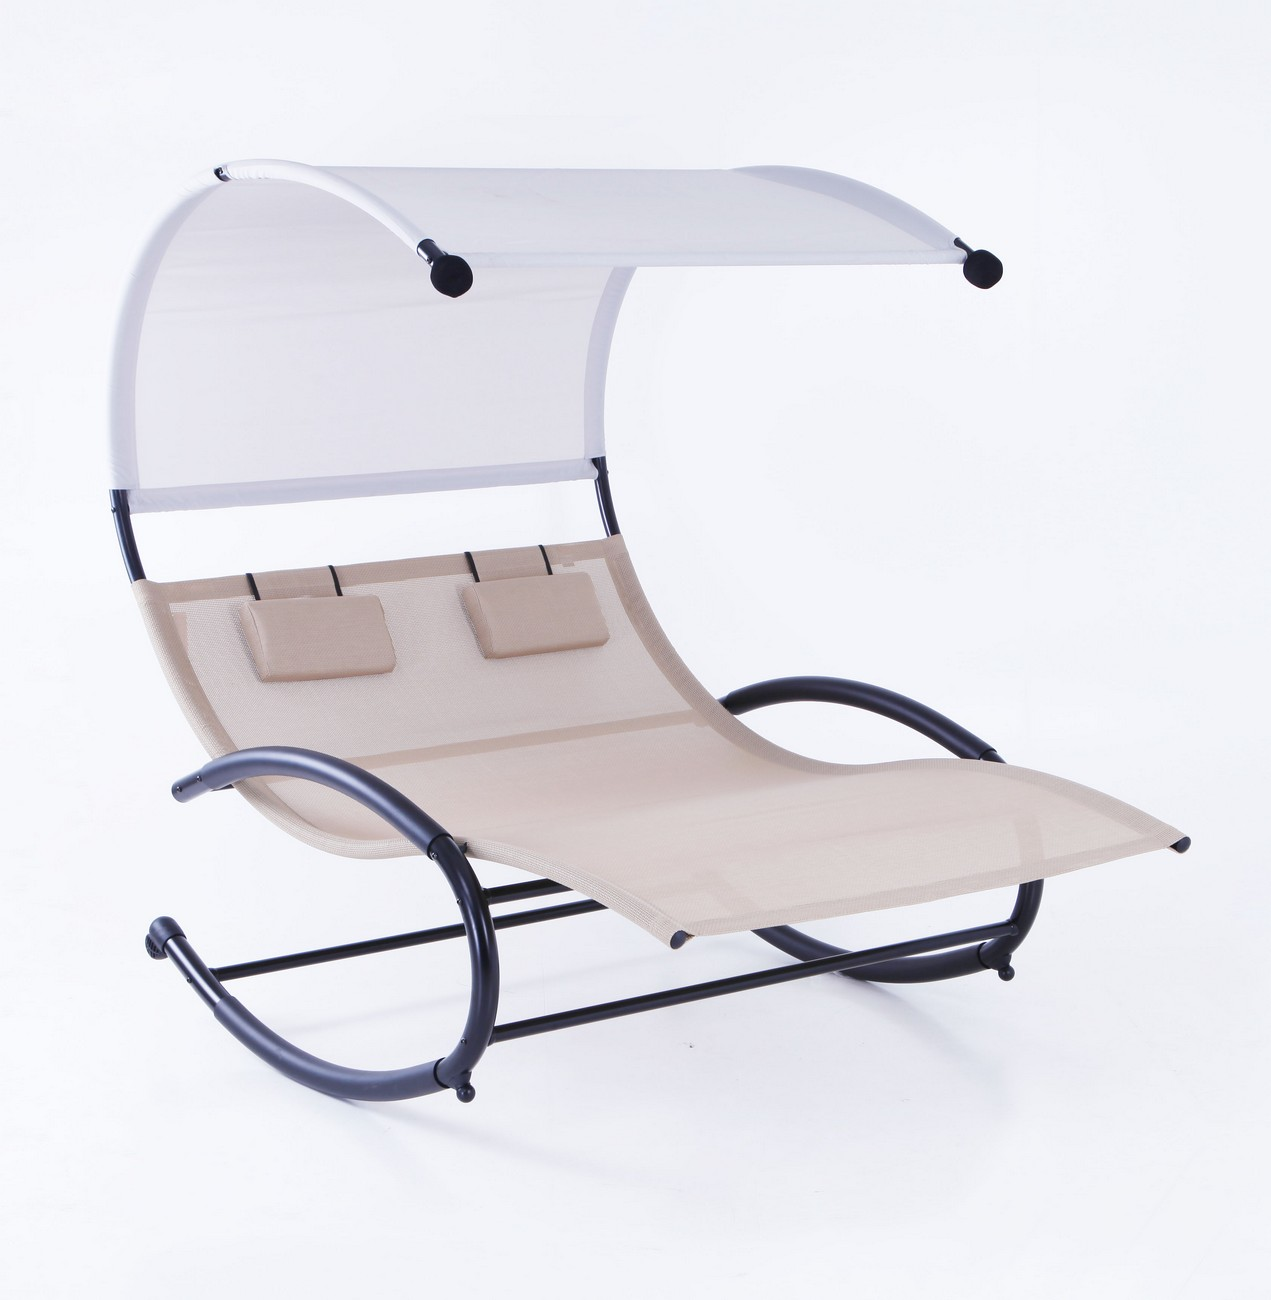 2 person chaise rocker patio furniture lounger chair bed for 2 person outdoor chaise lounge